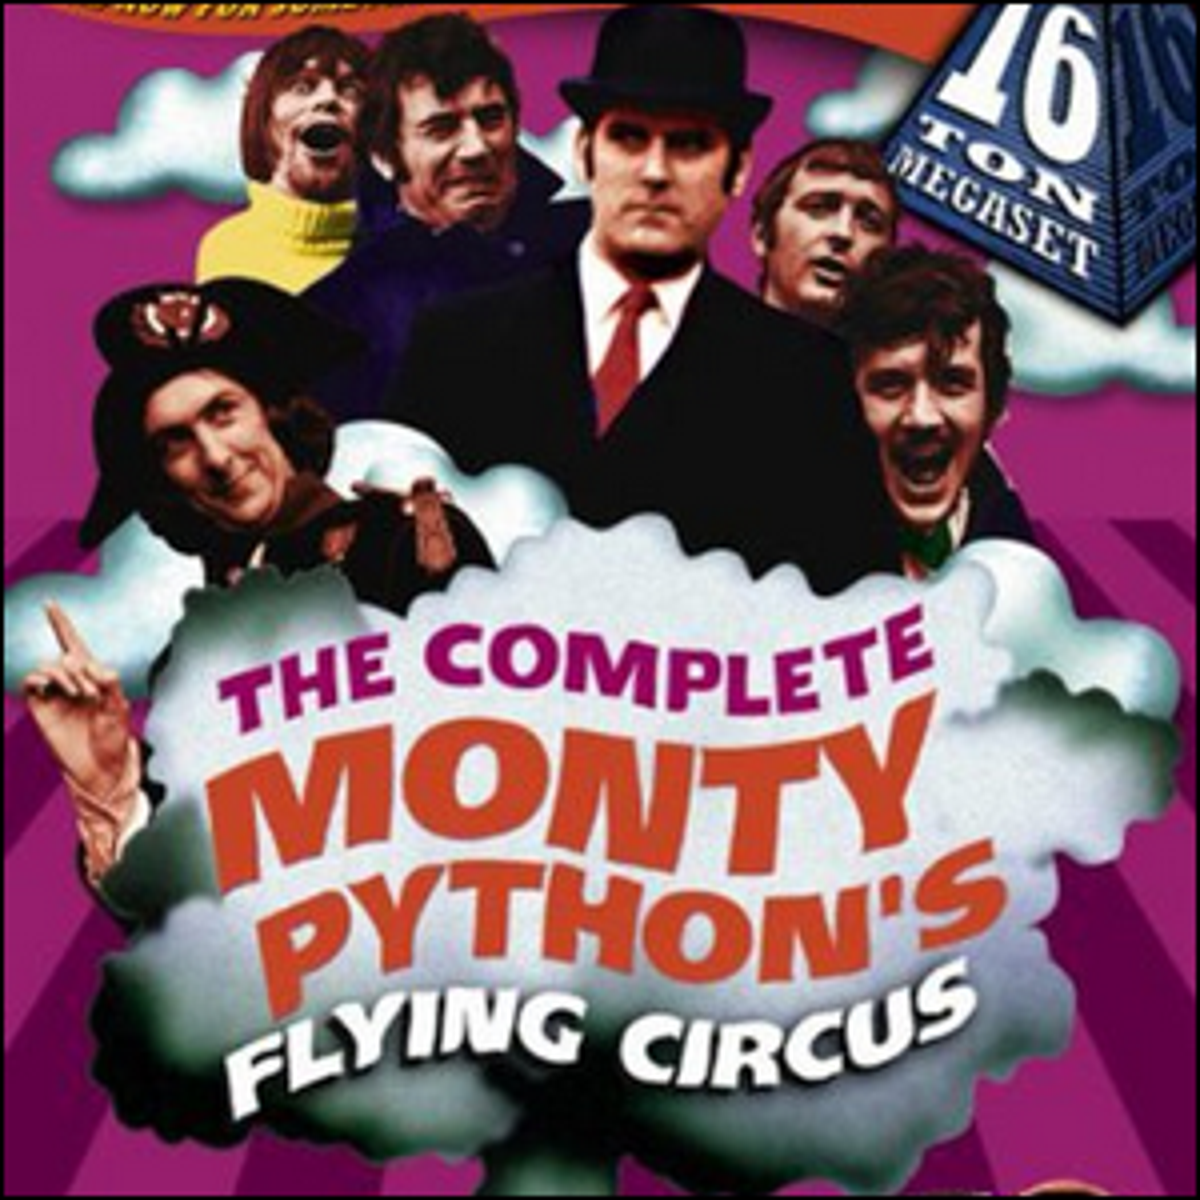 The cover artwork for The Complete Monty Python's Flying Circus release.